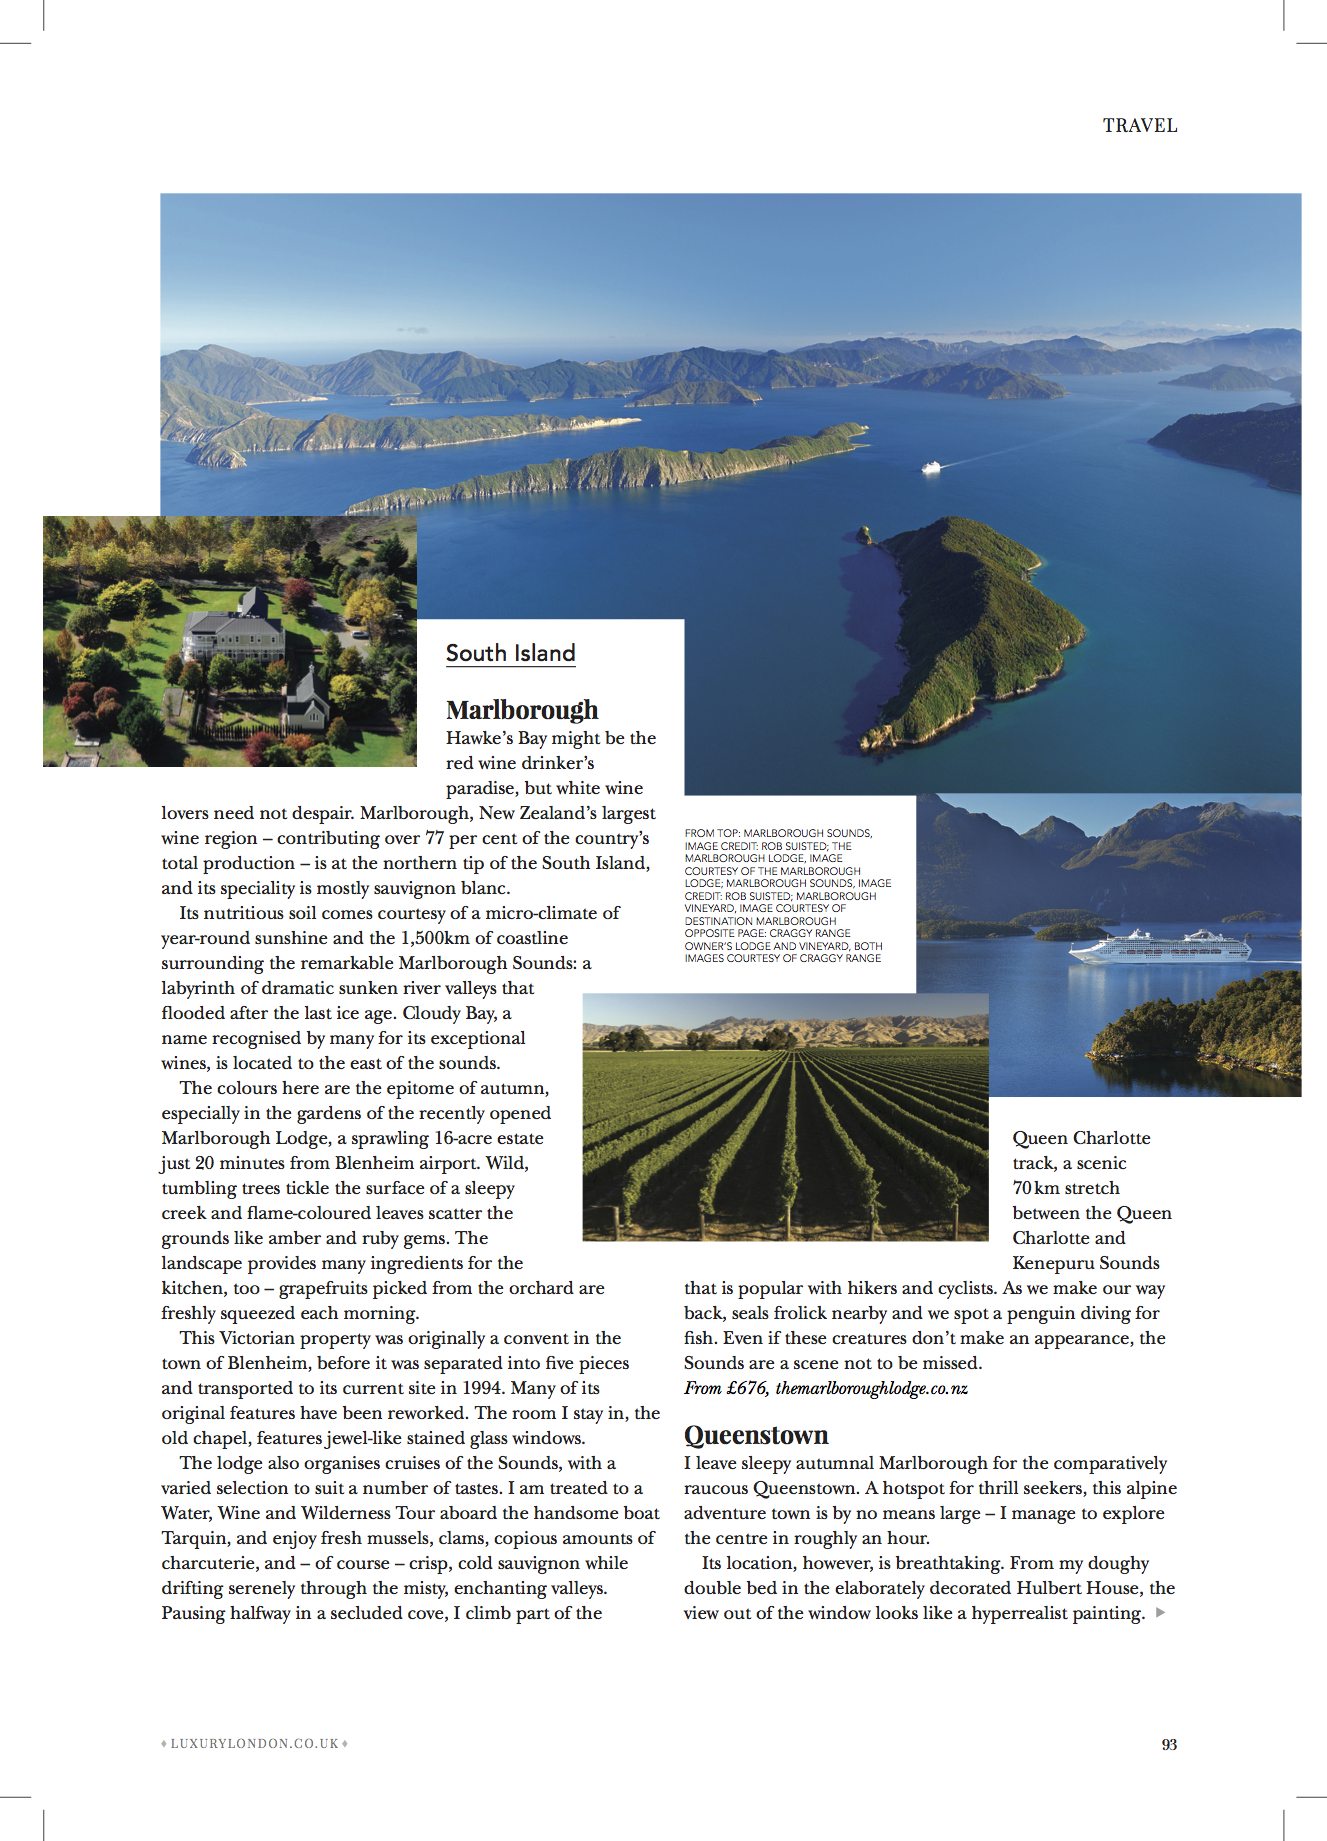 093 MAYF AUG 17 - TRAVEL - FEATURE - NEW ZEALAND.jpg